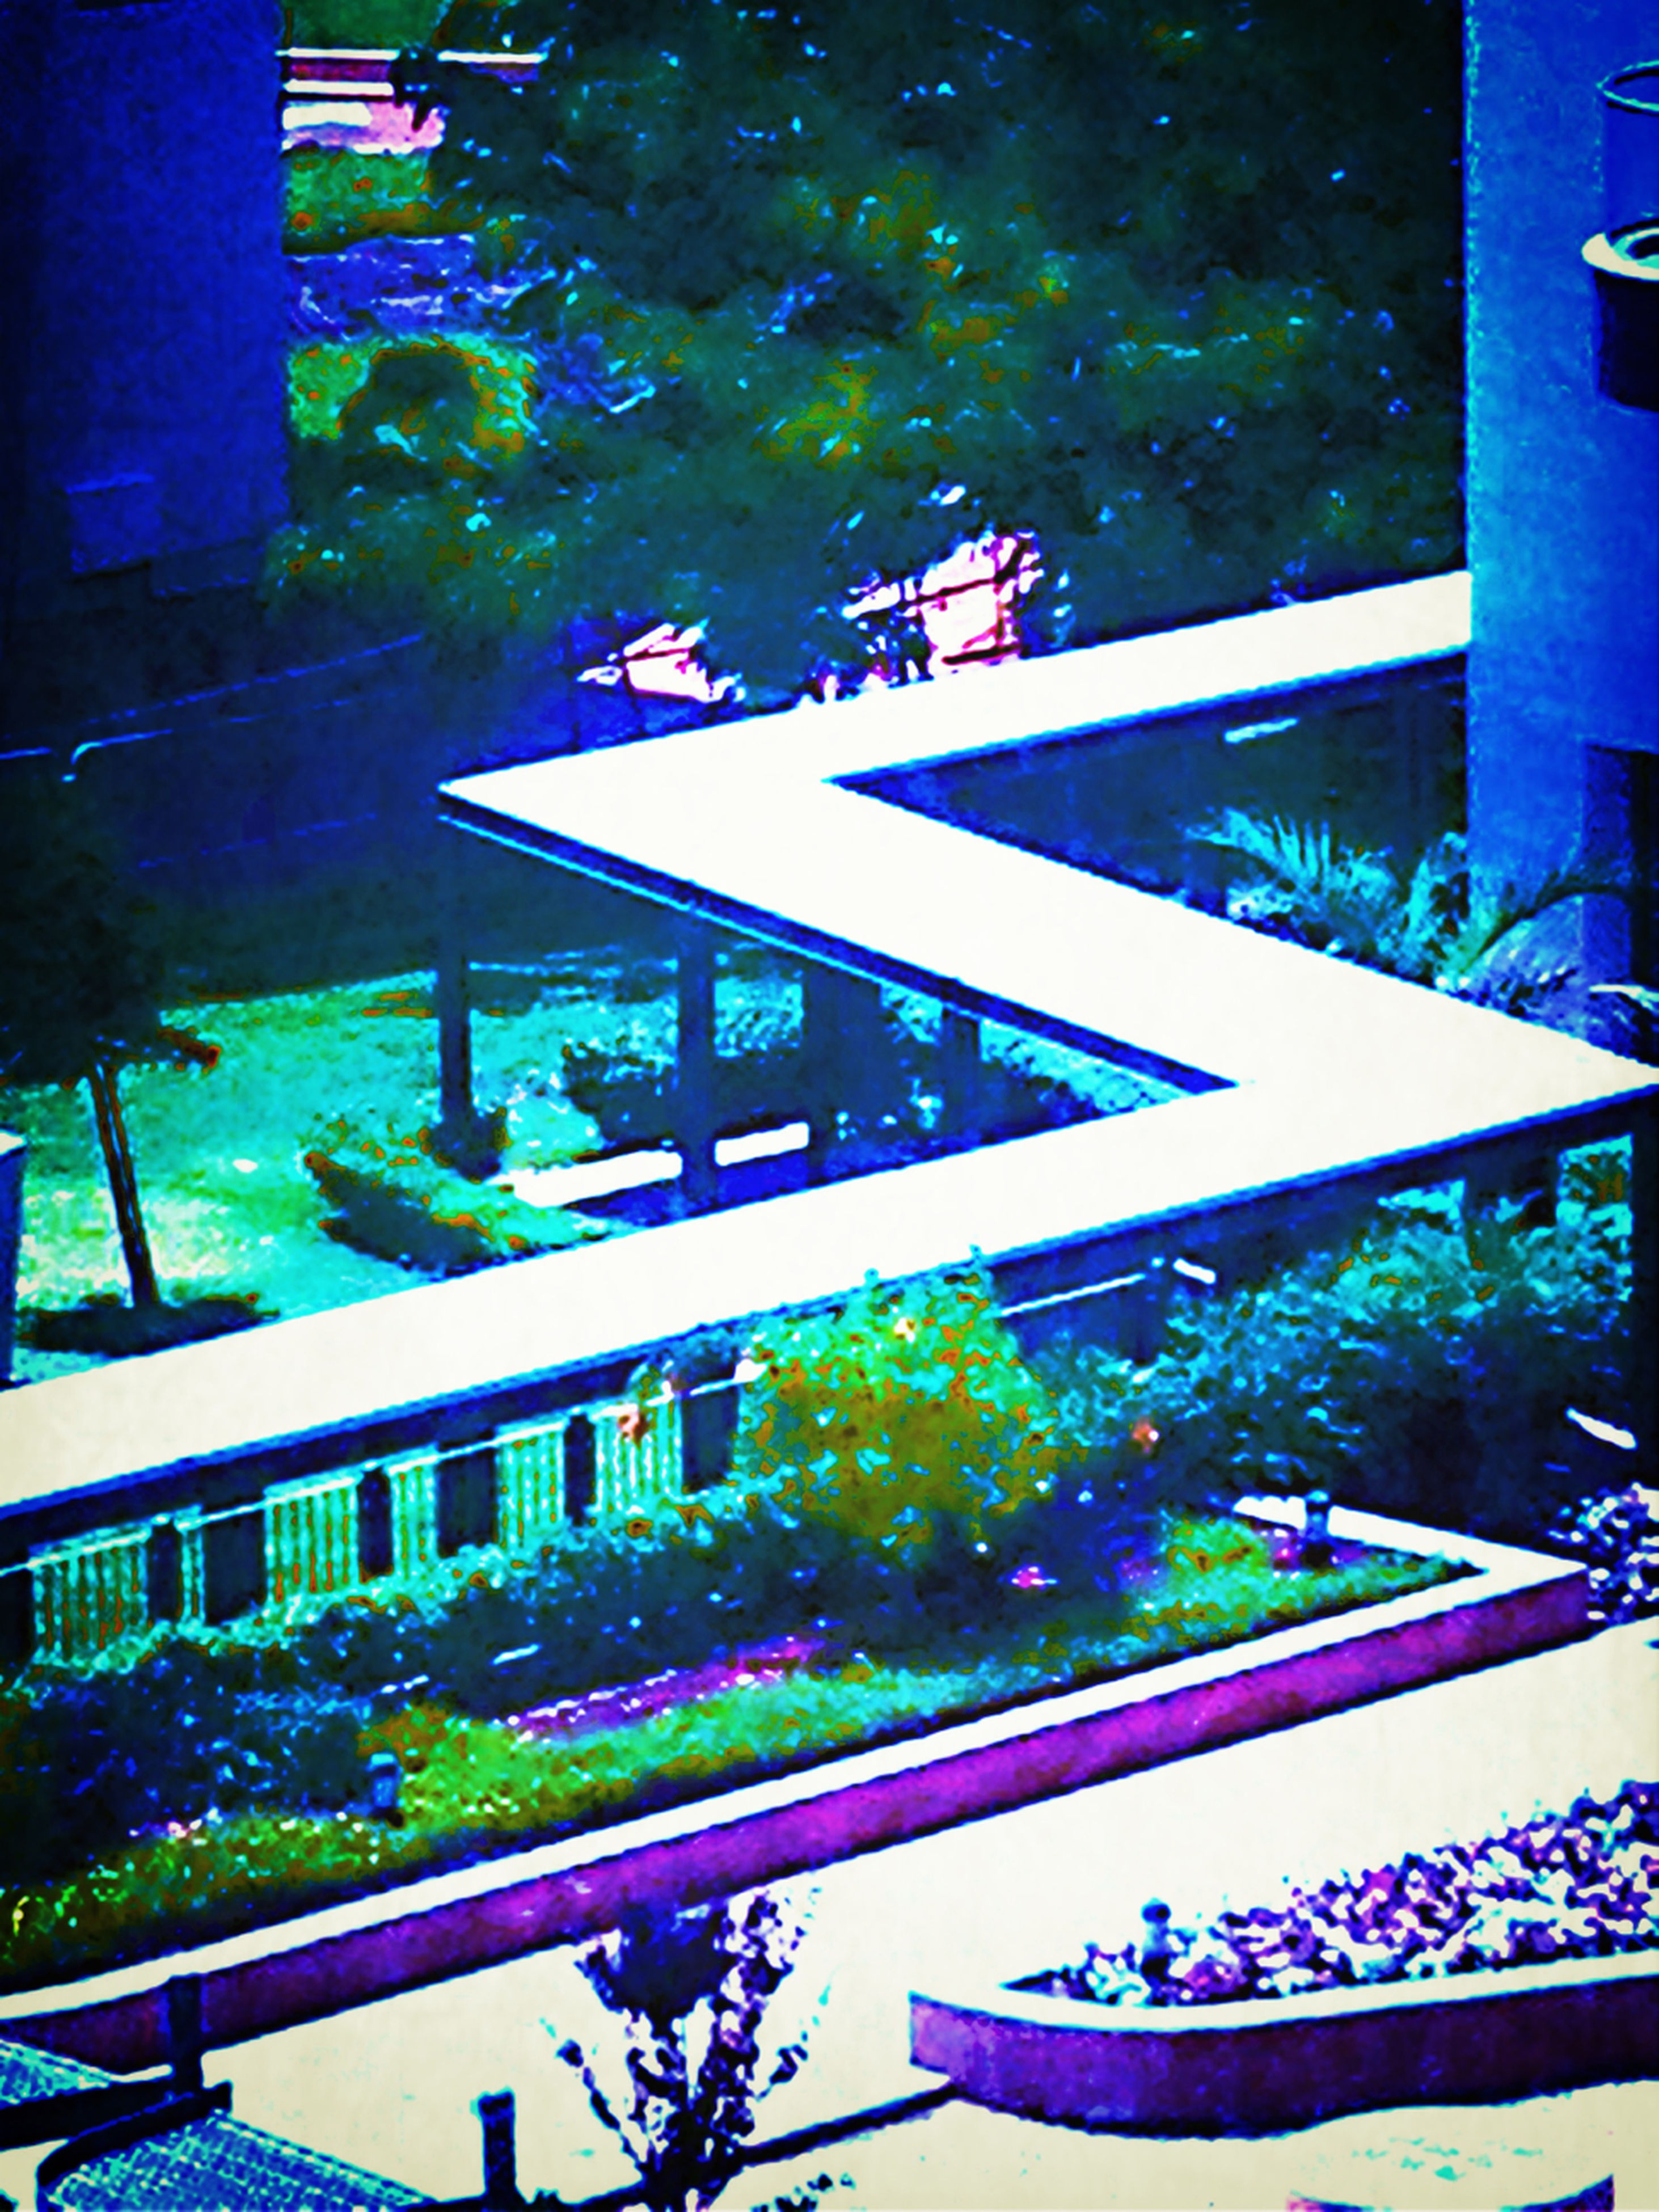 built structure, architecture, water, building exterior, swimming pool, high angle view, railing, reflection, city, tree, blue, pond, outdoors, day, park - man made space, sunlight, building, green color, no people, modern